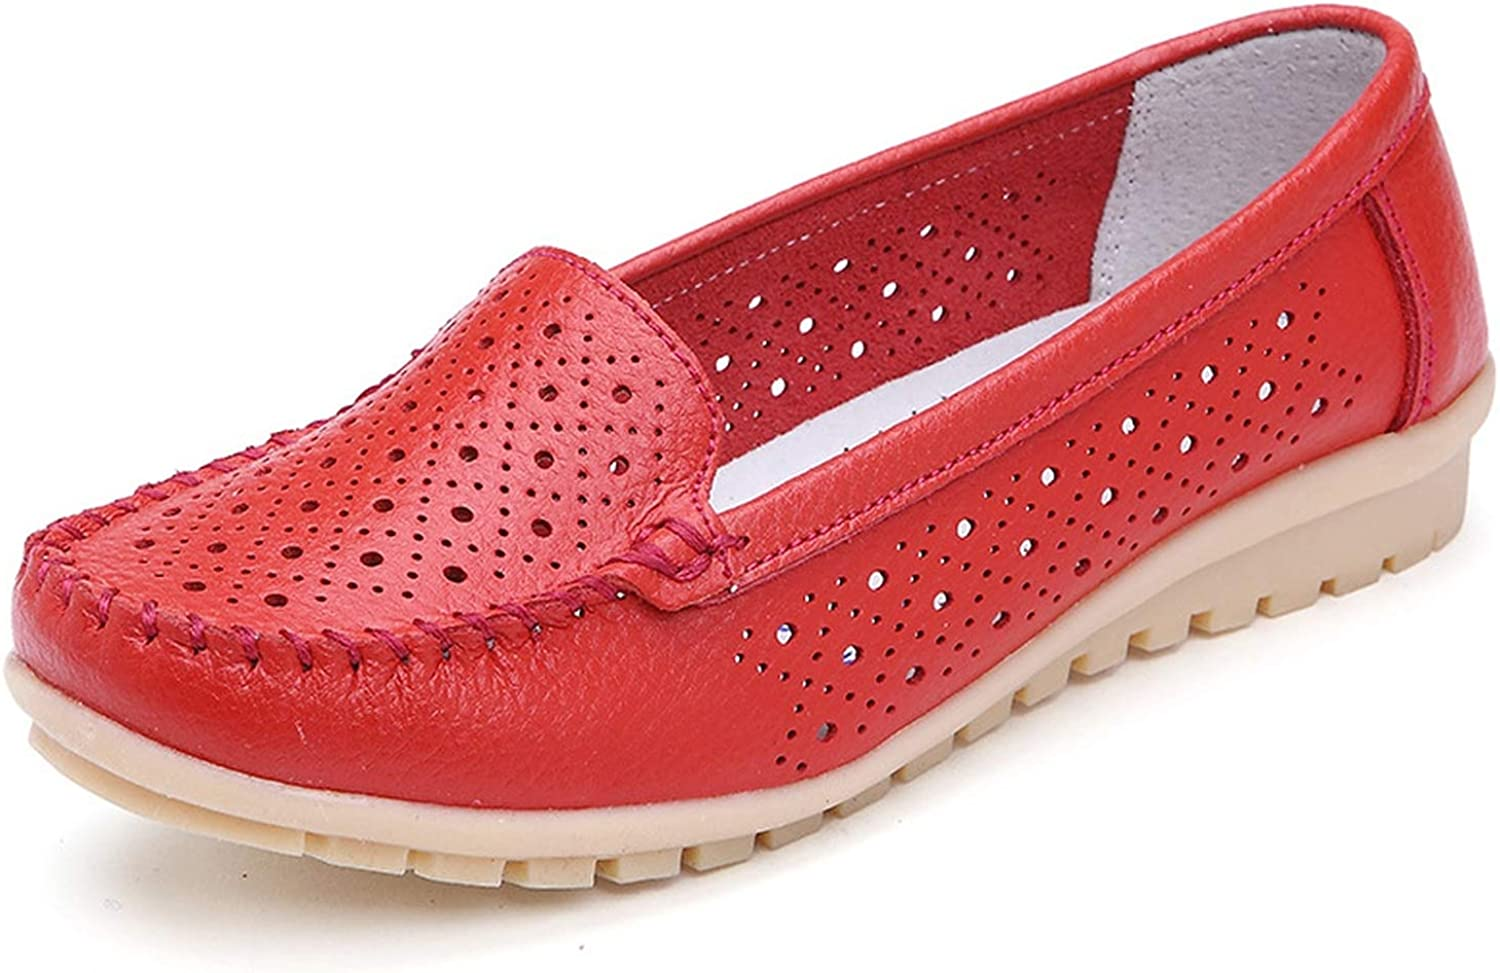 Summer Women Flats Women Genuine Leather Driving shoes Woman Ballet Loafers Slip on Naked Flats